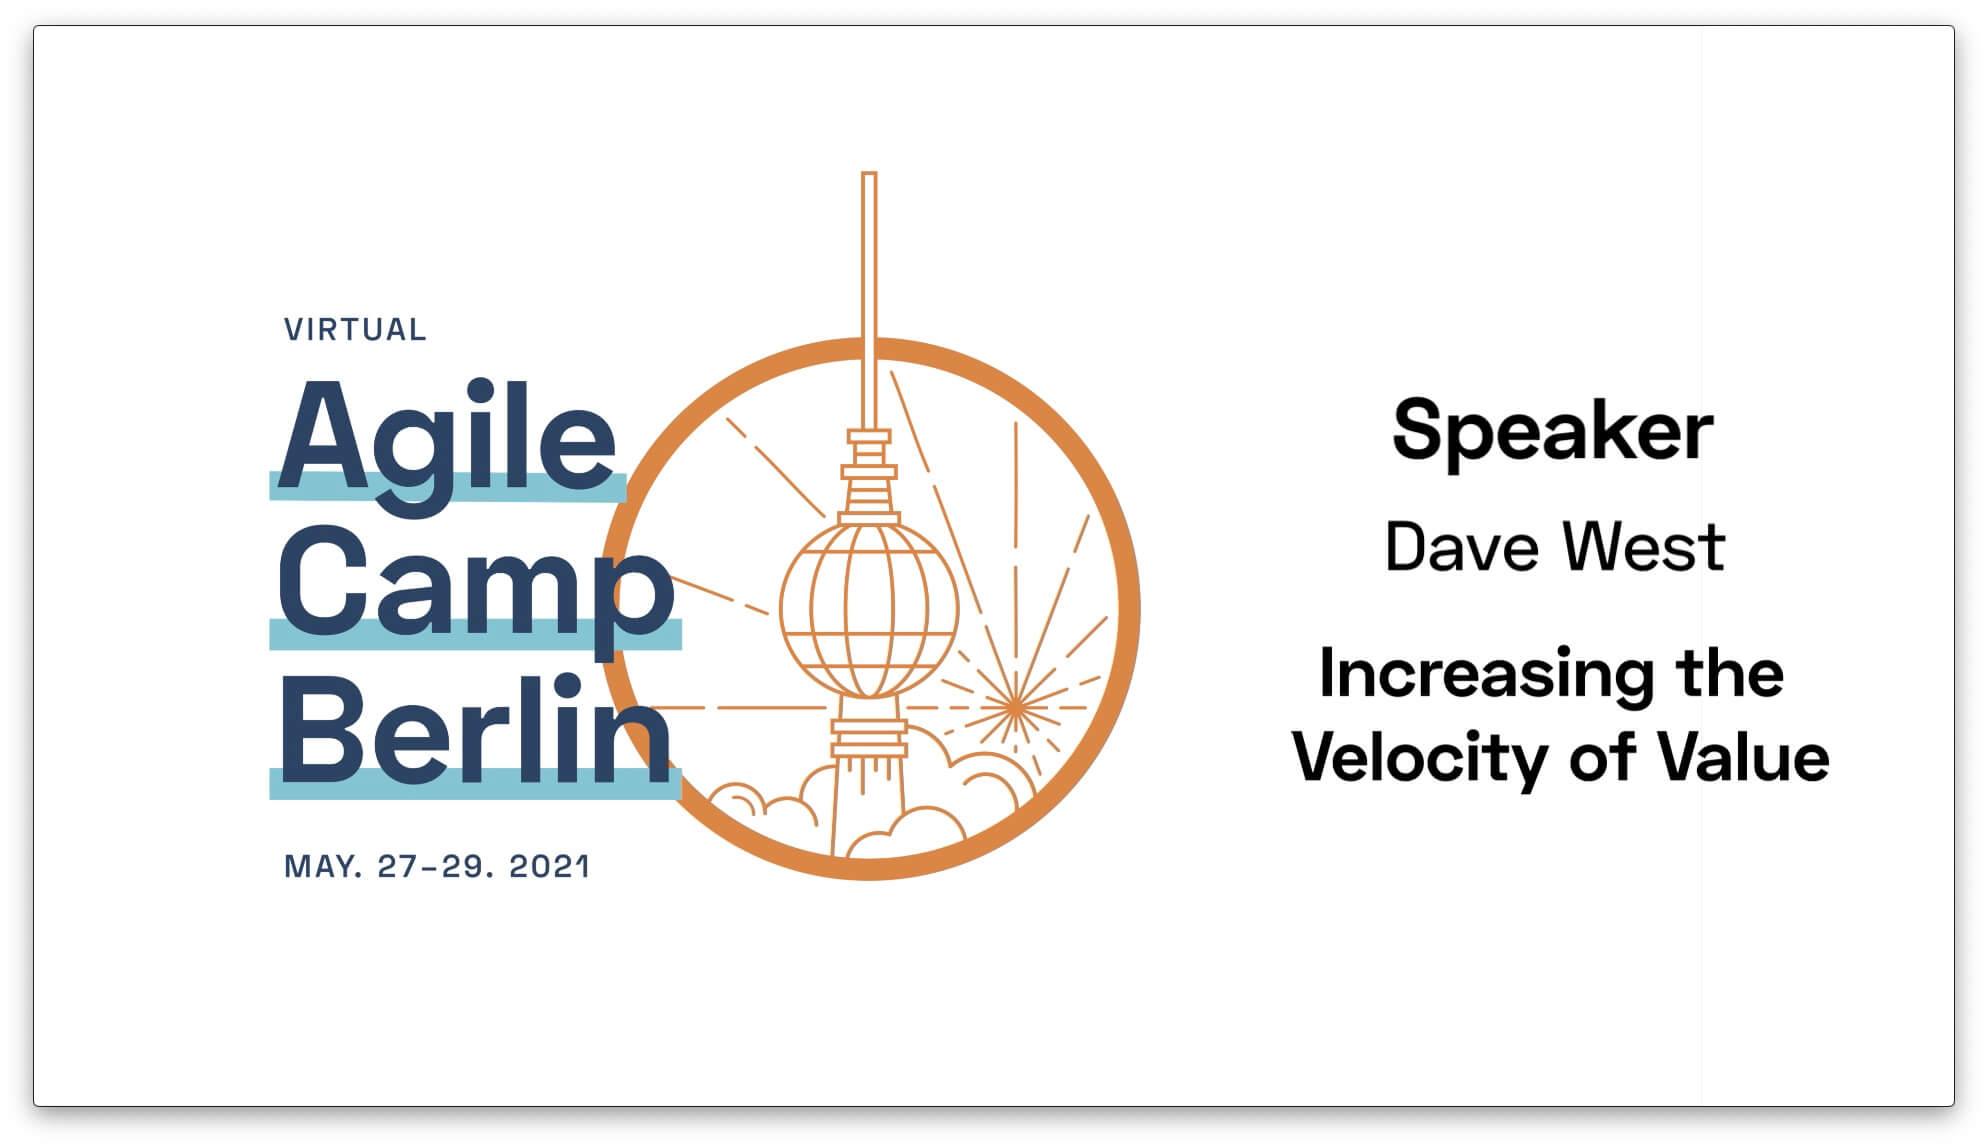 Increasing the Velocity of Value—with Dave West from the Agile Camp Berlin 2021